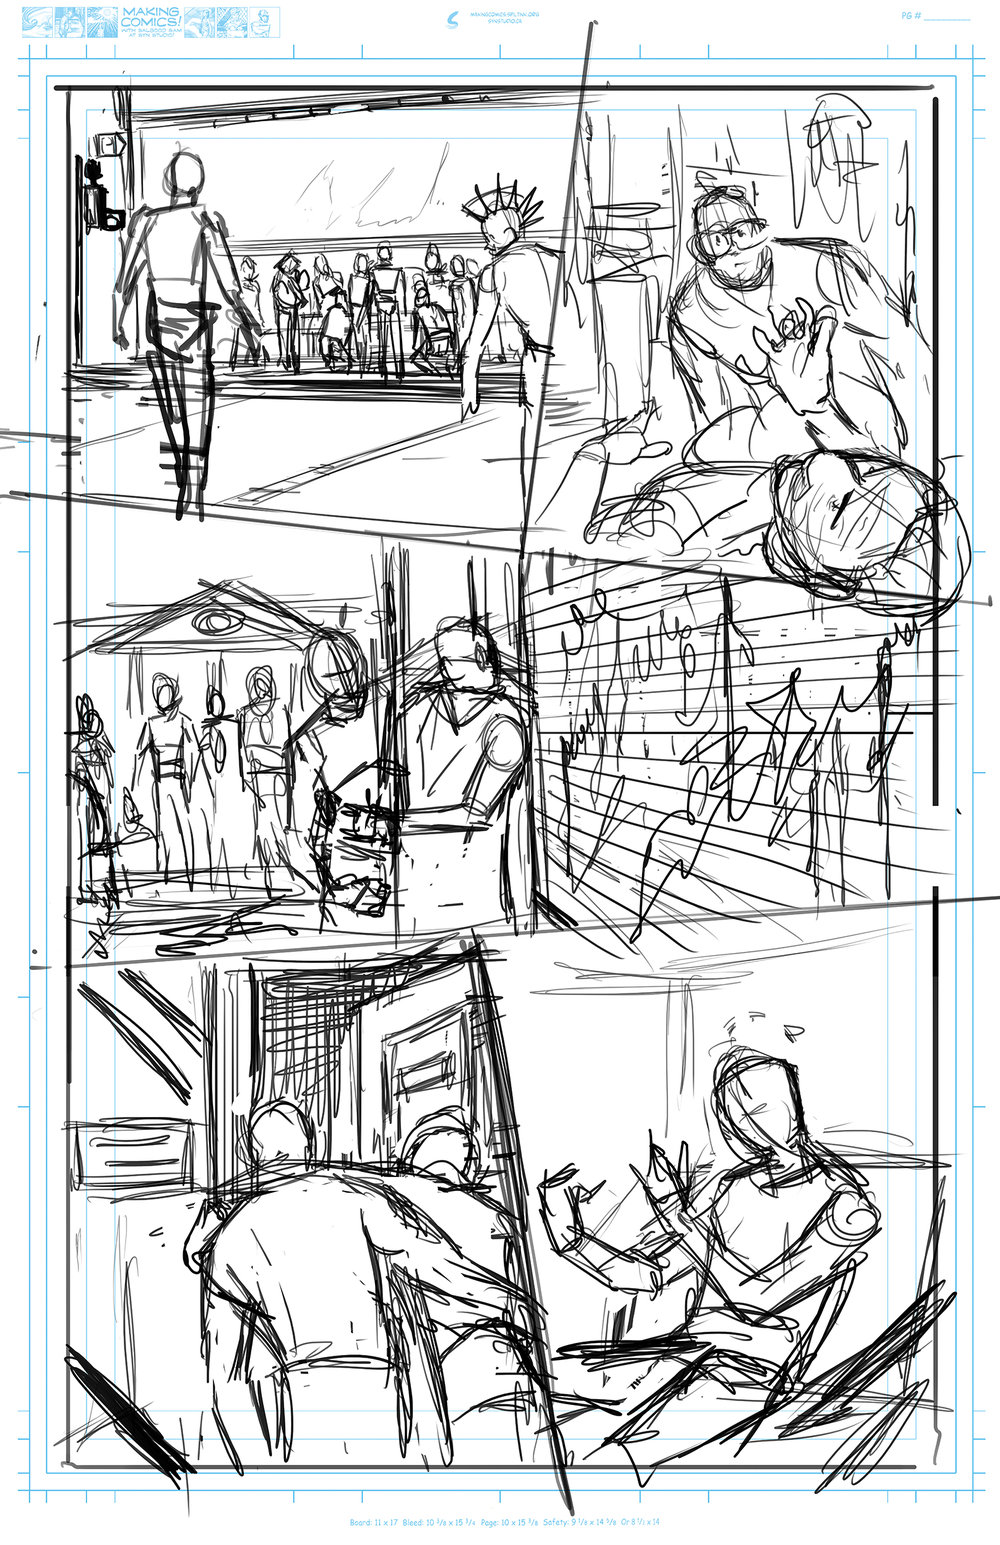 page-20-rough.jpg